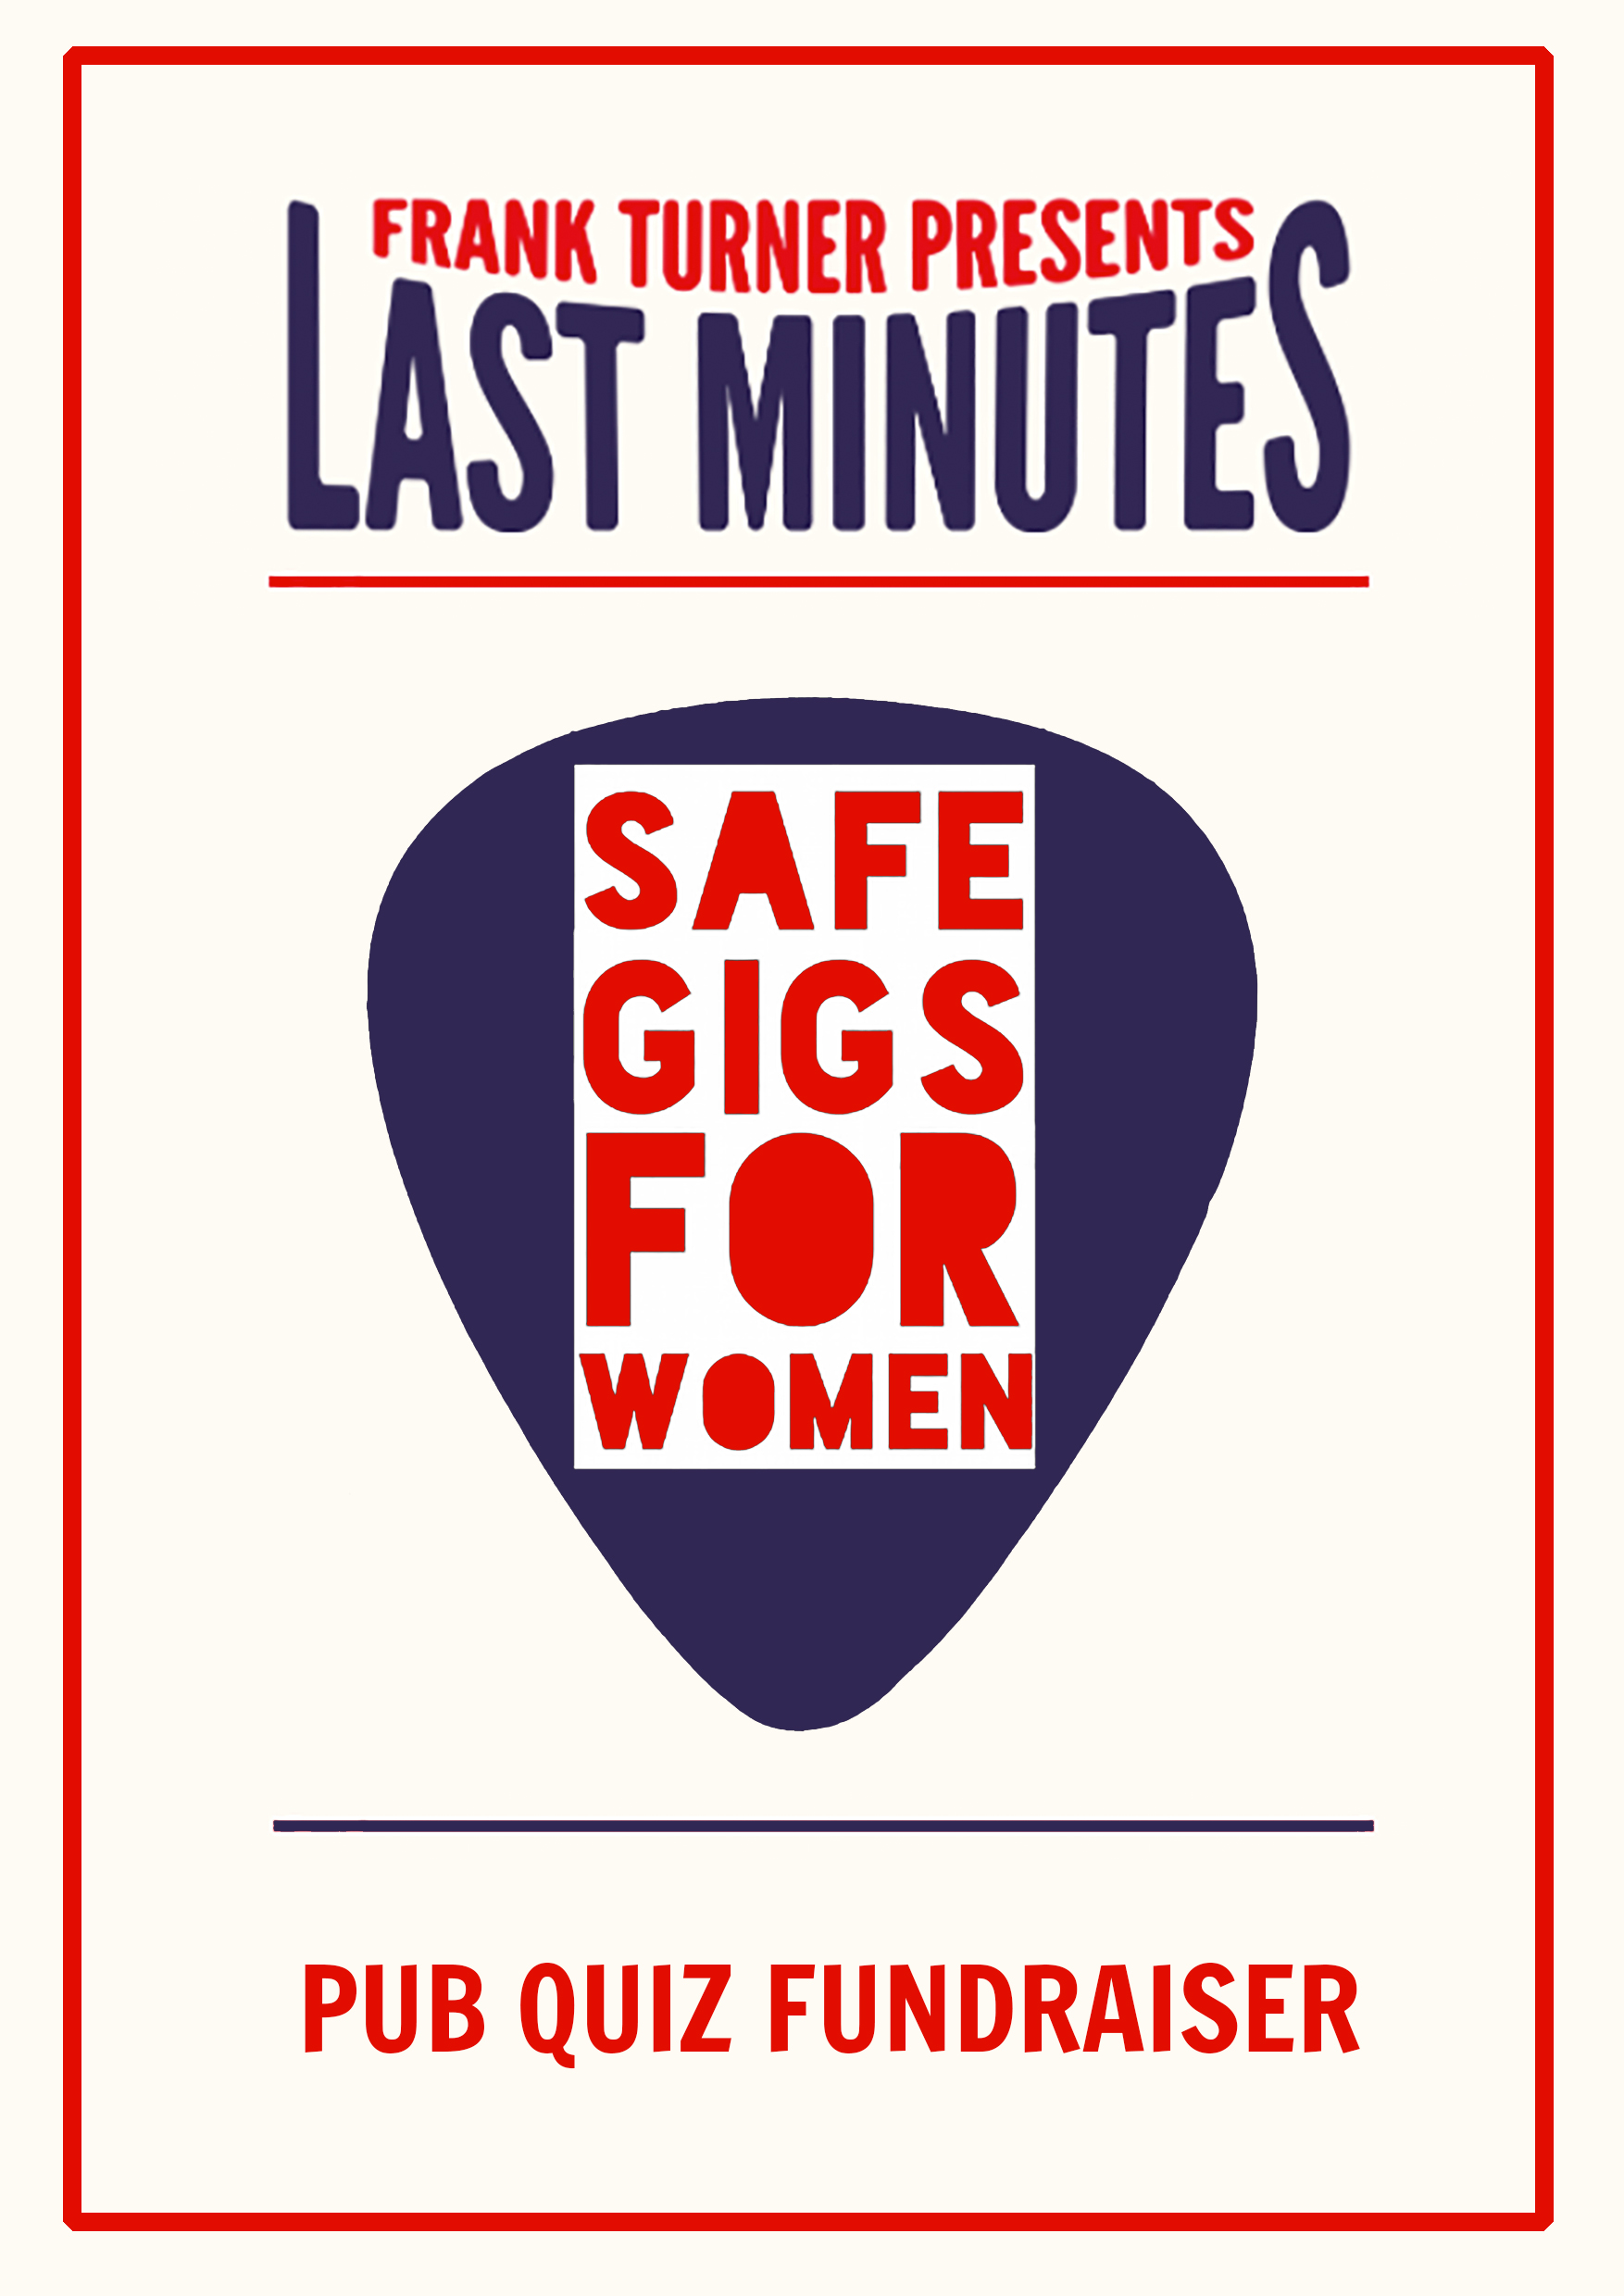 SAFE GIGS FOR WOMEN PUB QUIZ